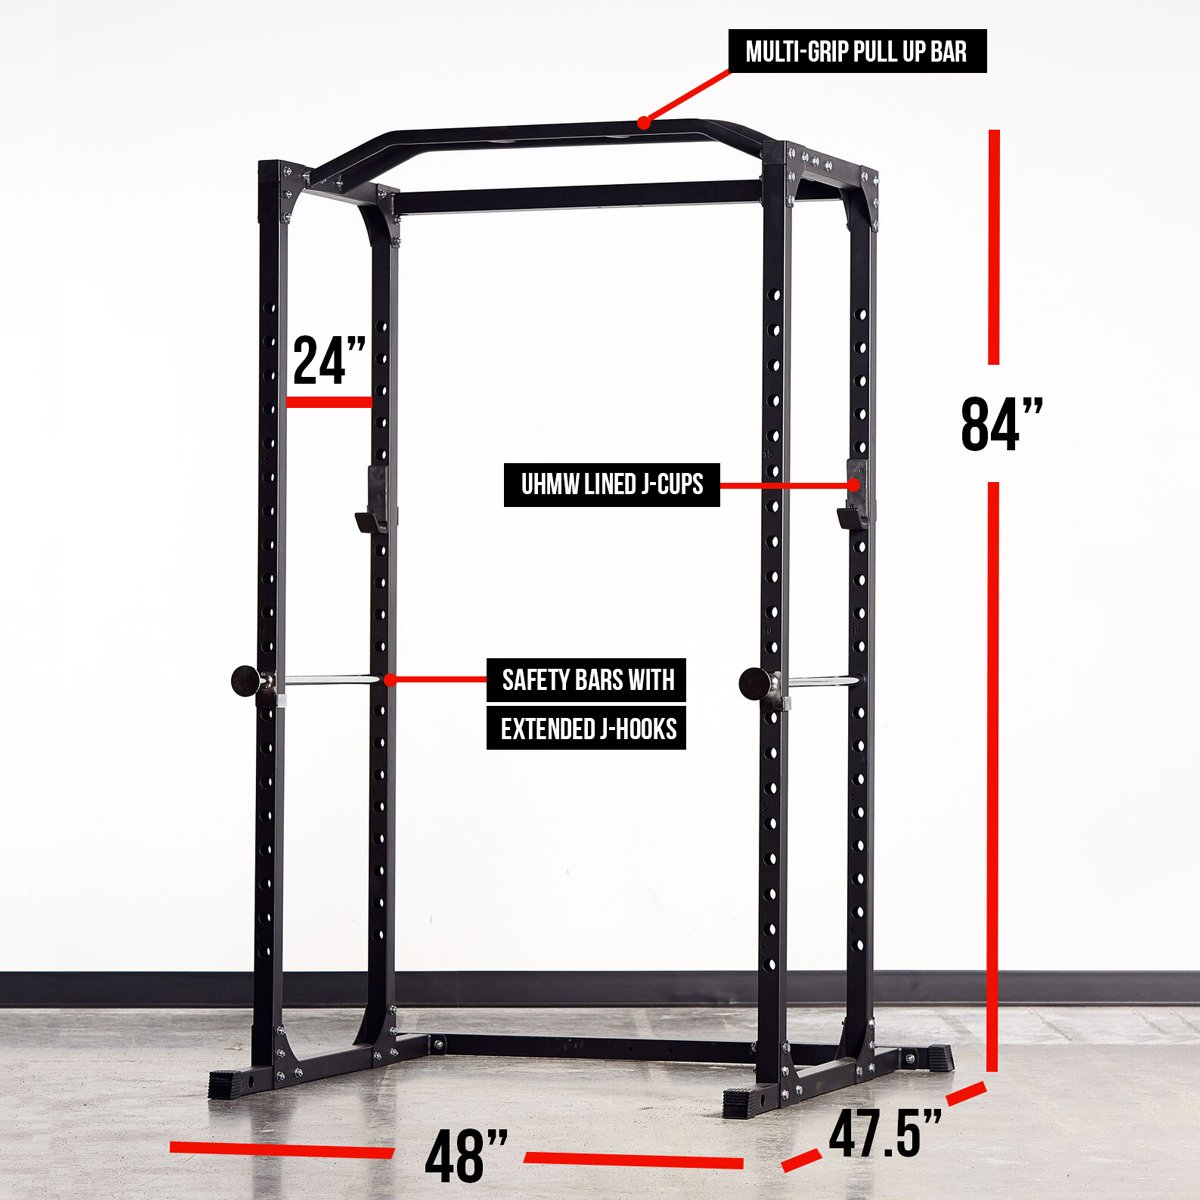 Rep PR-1100 Power Rack - 1,000 lbs Rated Lifting Cage for Weight Training (Silver Power Rack, No Bench) by Rep Fitness (Image #6)